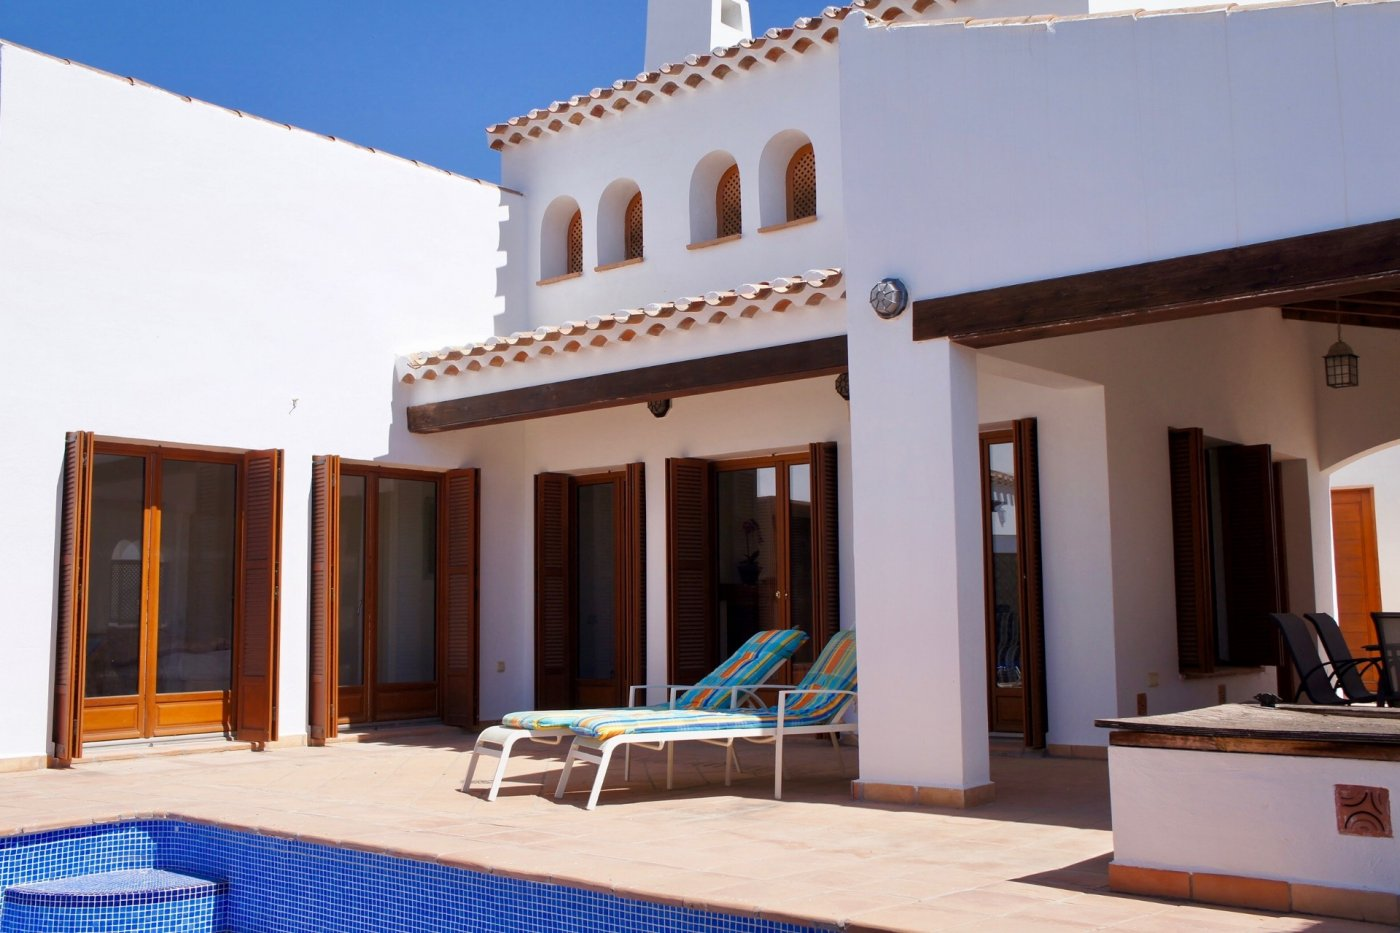 Gallery Image 1 of South West Facing 3 Bed Villa with Private Pool on El Valle Golf resort